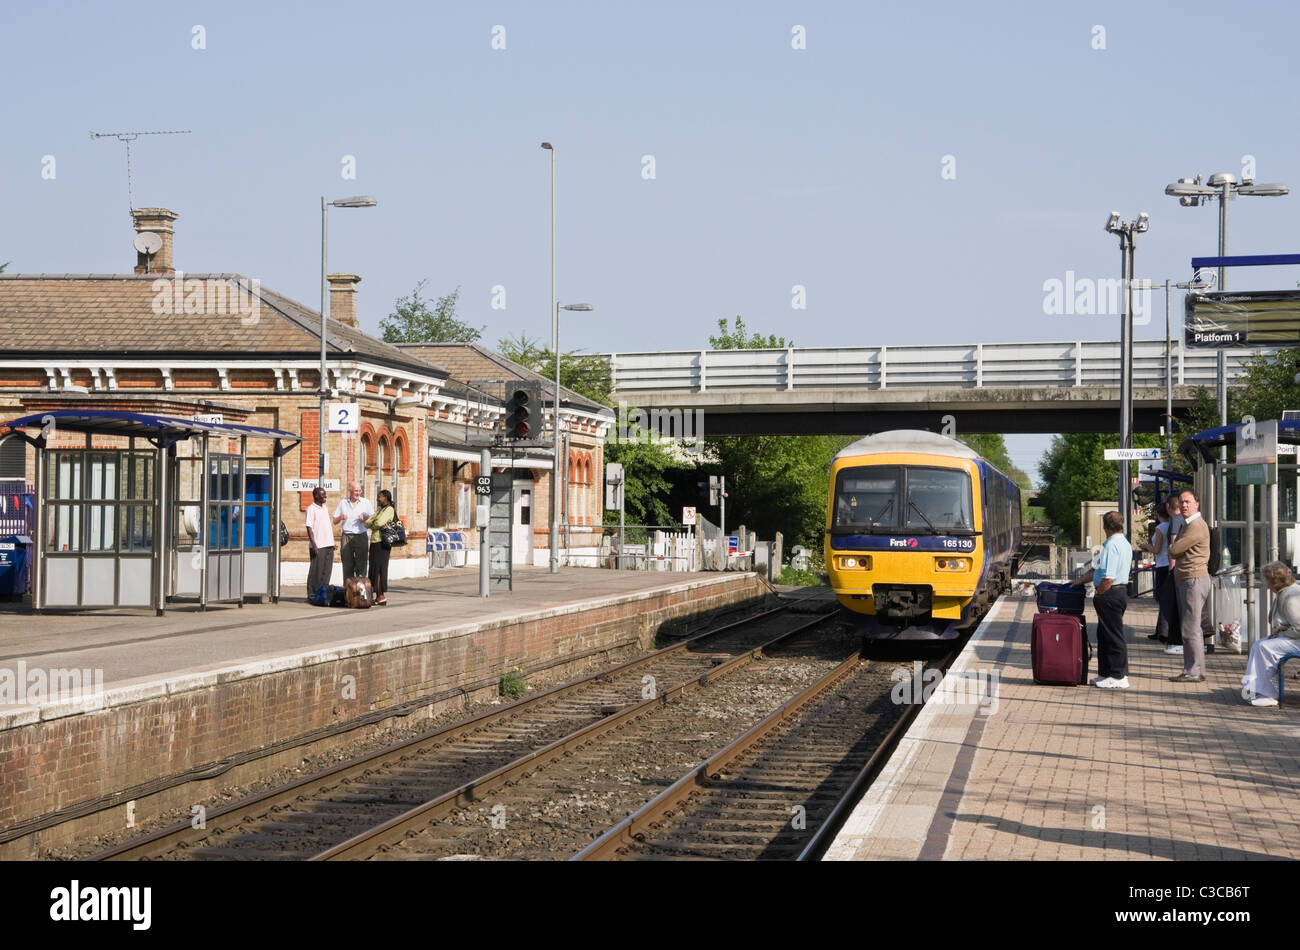 North Camp, Hampshire, England, UK. First Great Western train approaching railway station with passengers waiting - Stock Image